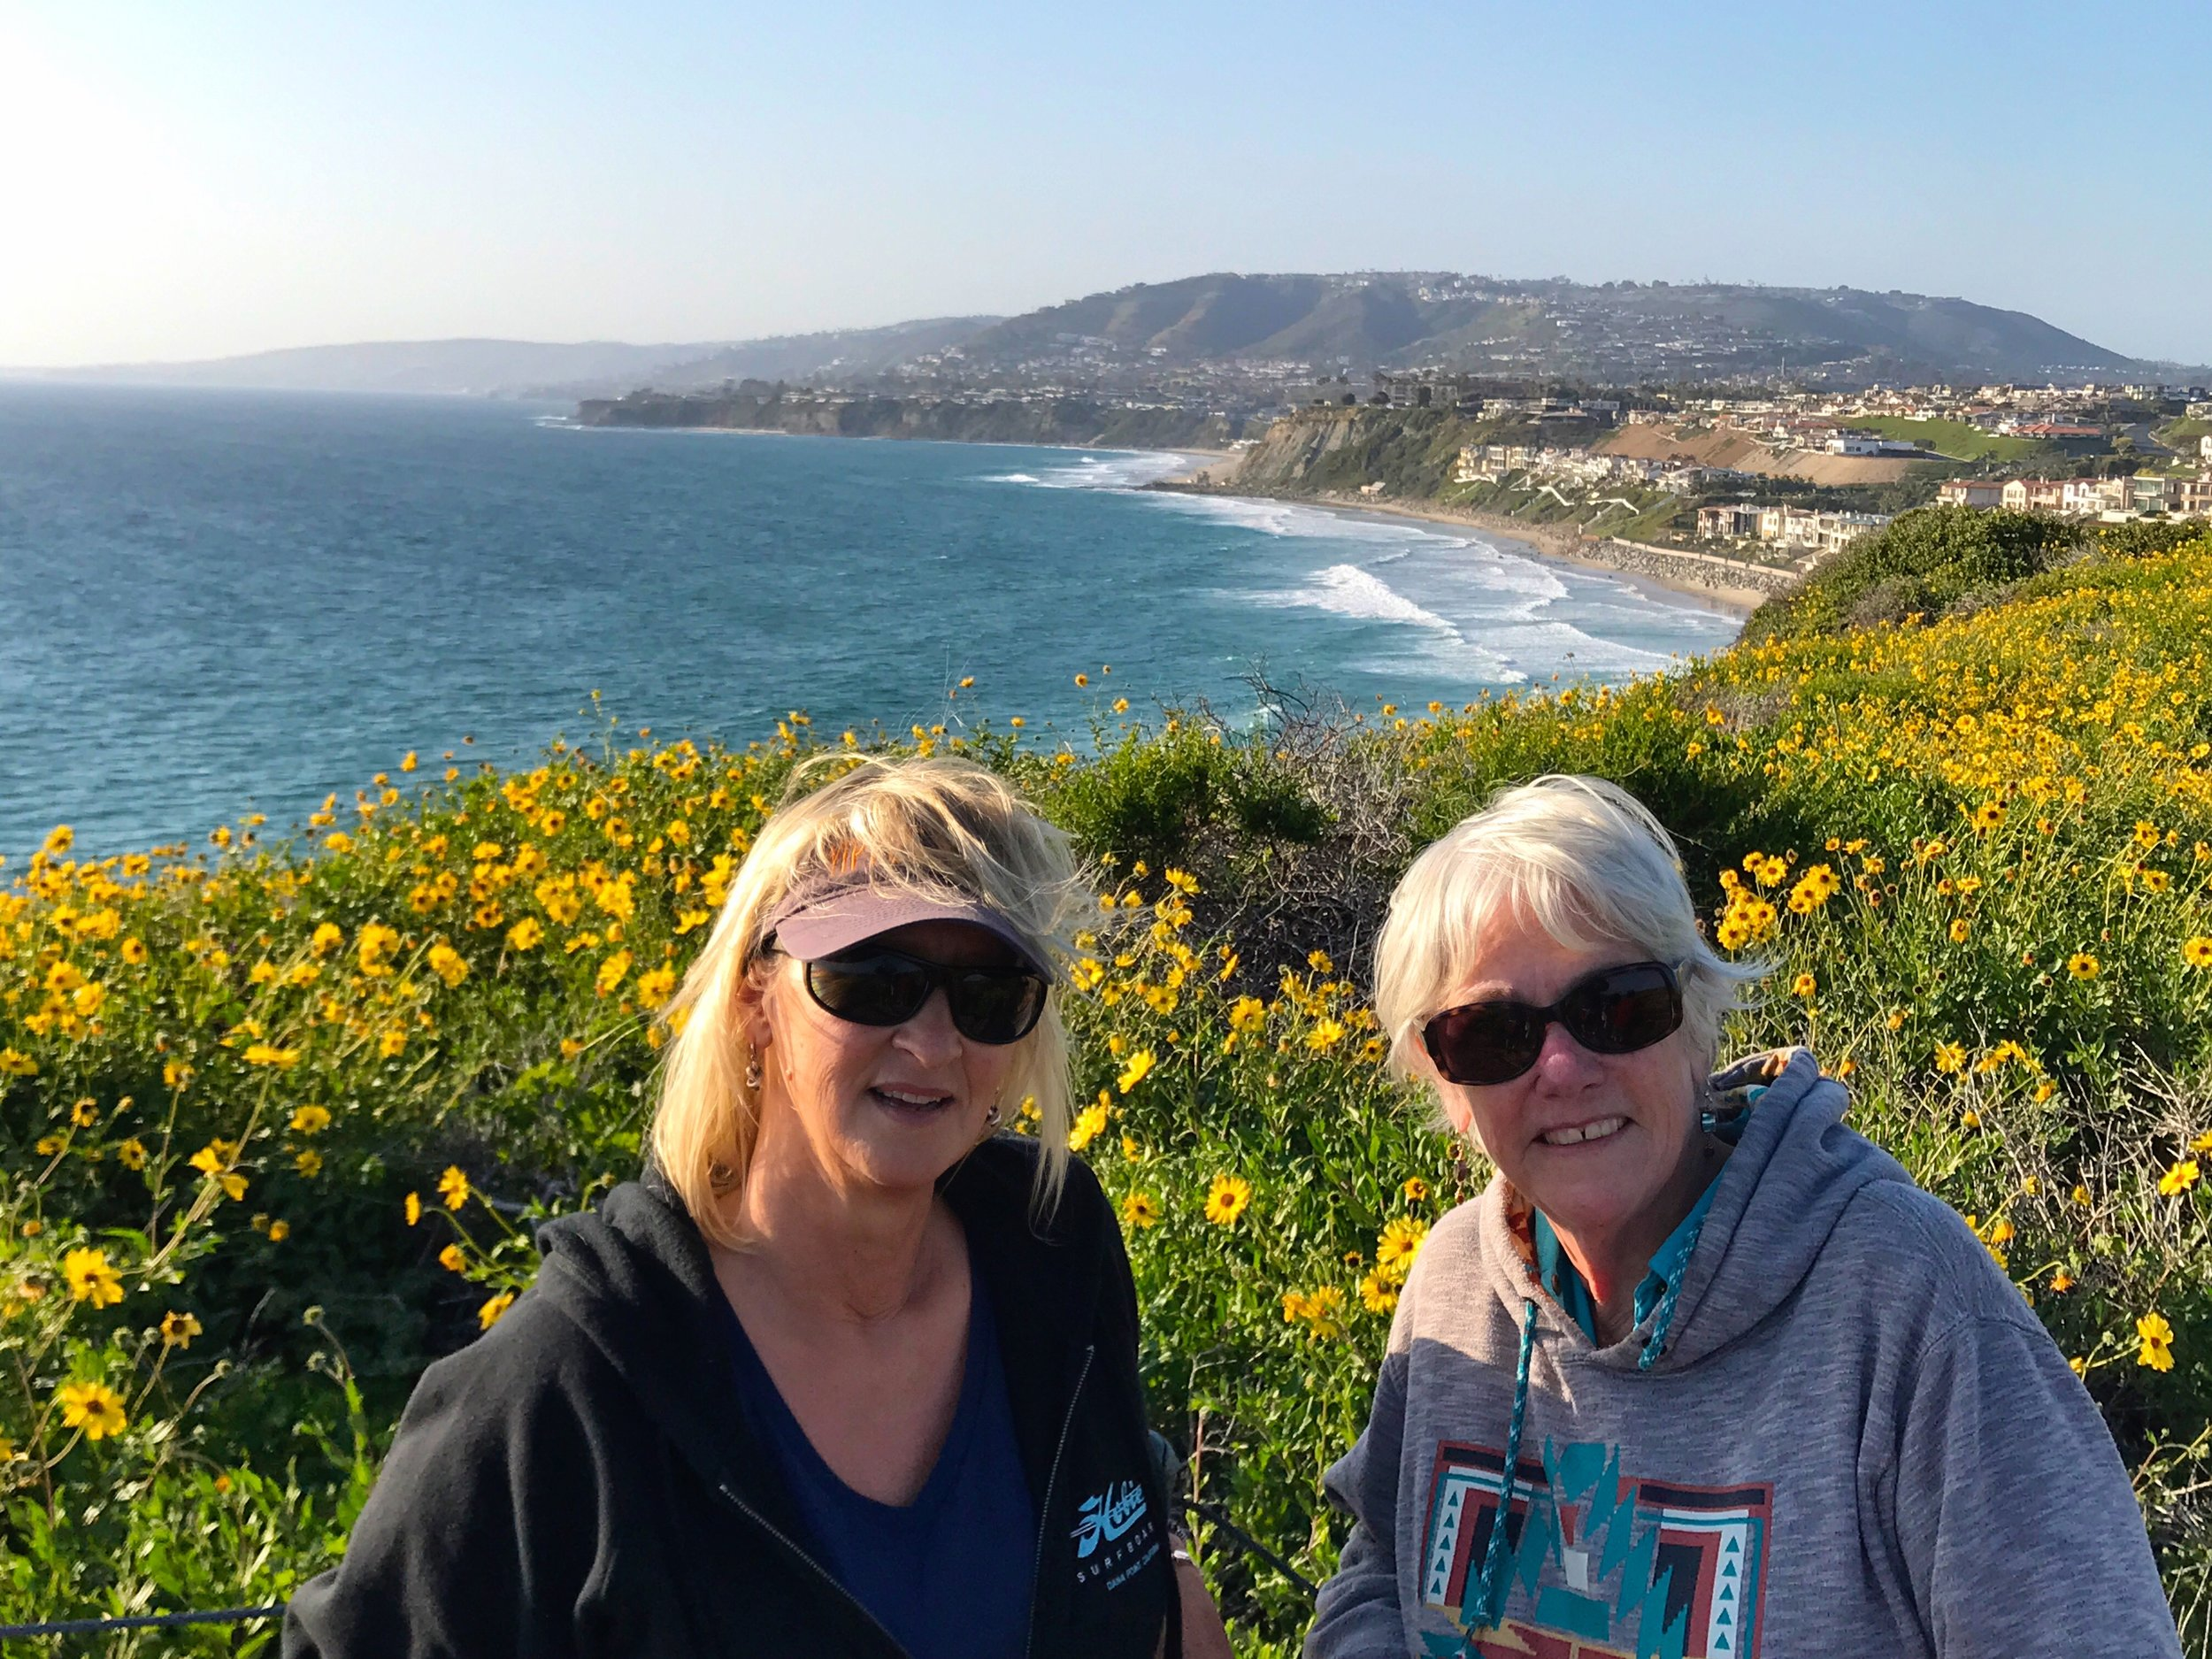 Back in SoCal with Betsy in Dana Point